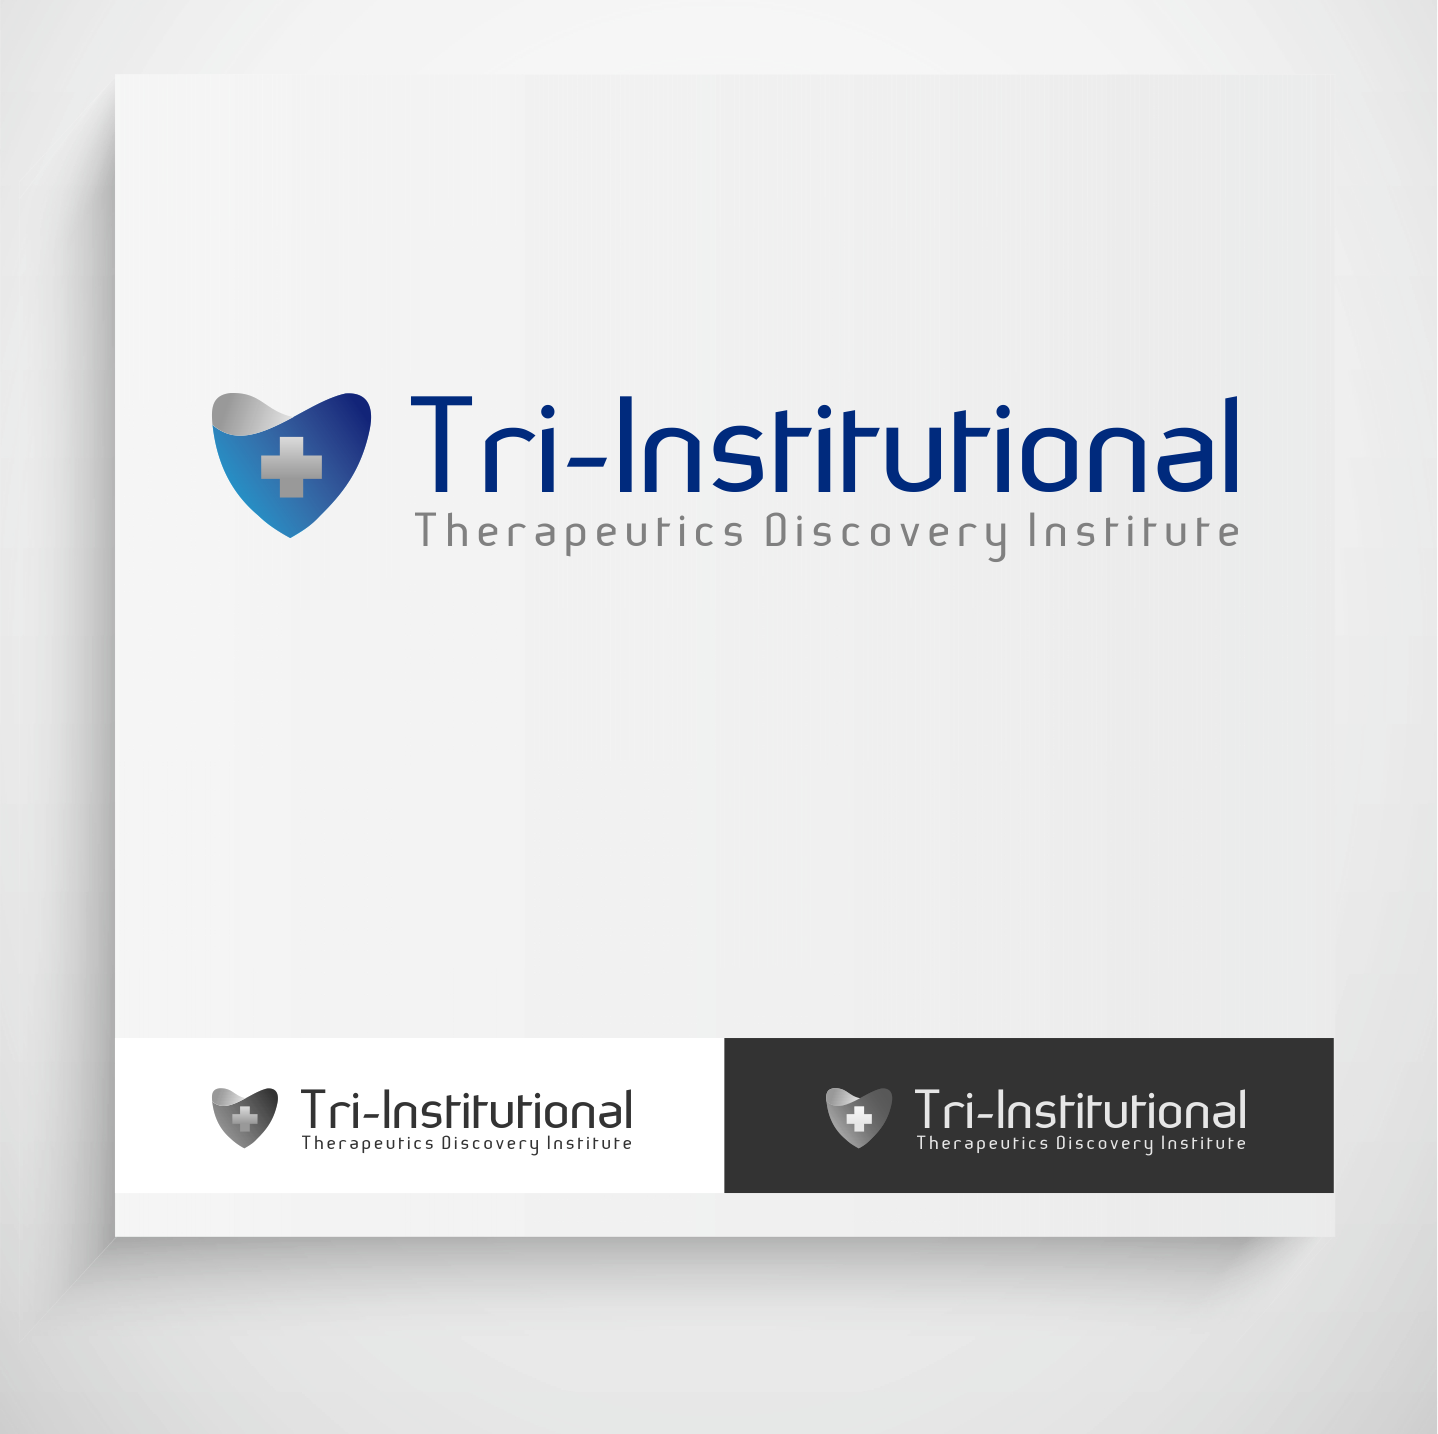 Logo Design by Krzysztof Mokanek - Entry No. 78 in the Logo Design Contest Inspiring Logo Design for Tri-Institutional Therapeutics Discovery Institute.